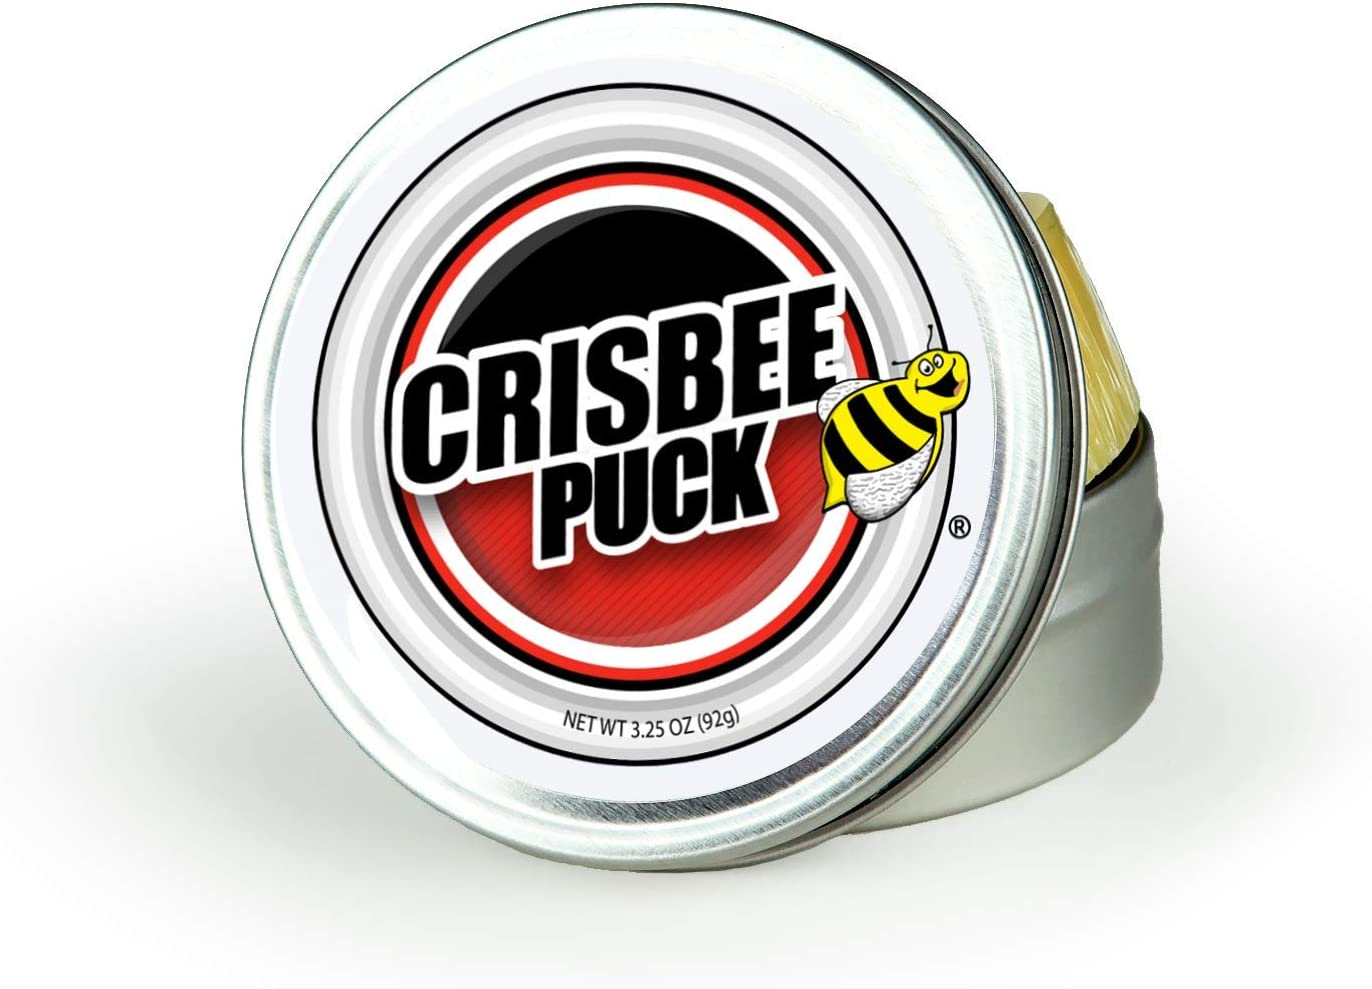 Crisbee Puck Cast Iron and Carbon Steel Seasoning - Family Made in USA - The Cast Iron Seasoning Oil & Conditioner Preferred by Experts - Maintain a Cleaner Non-Stick Skillet